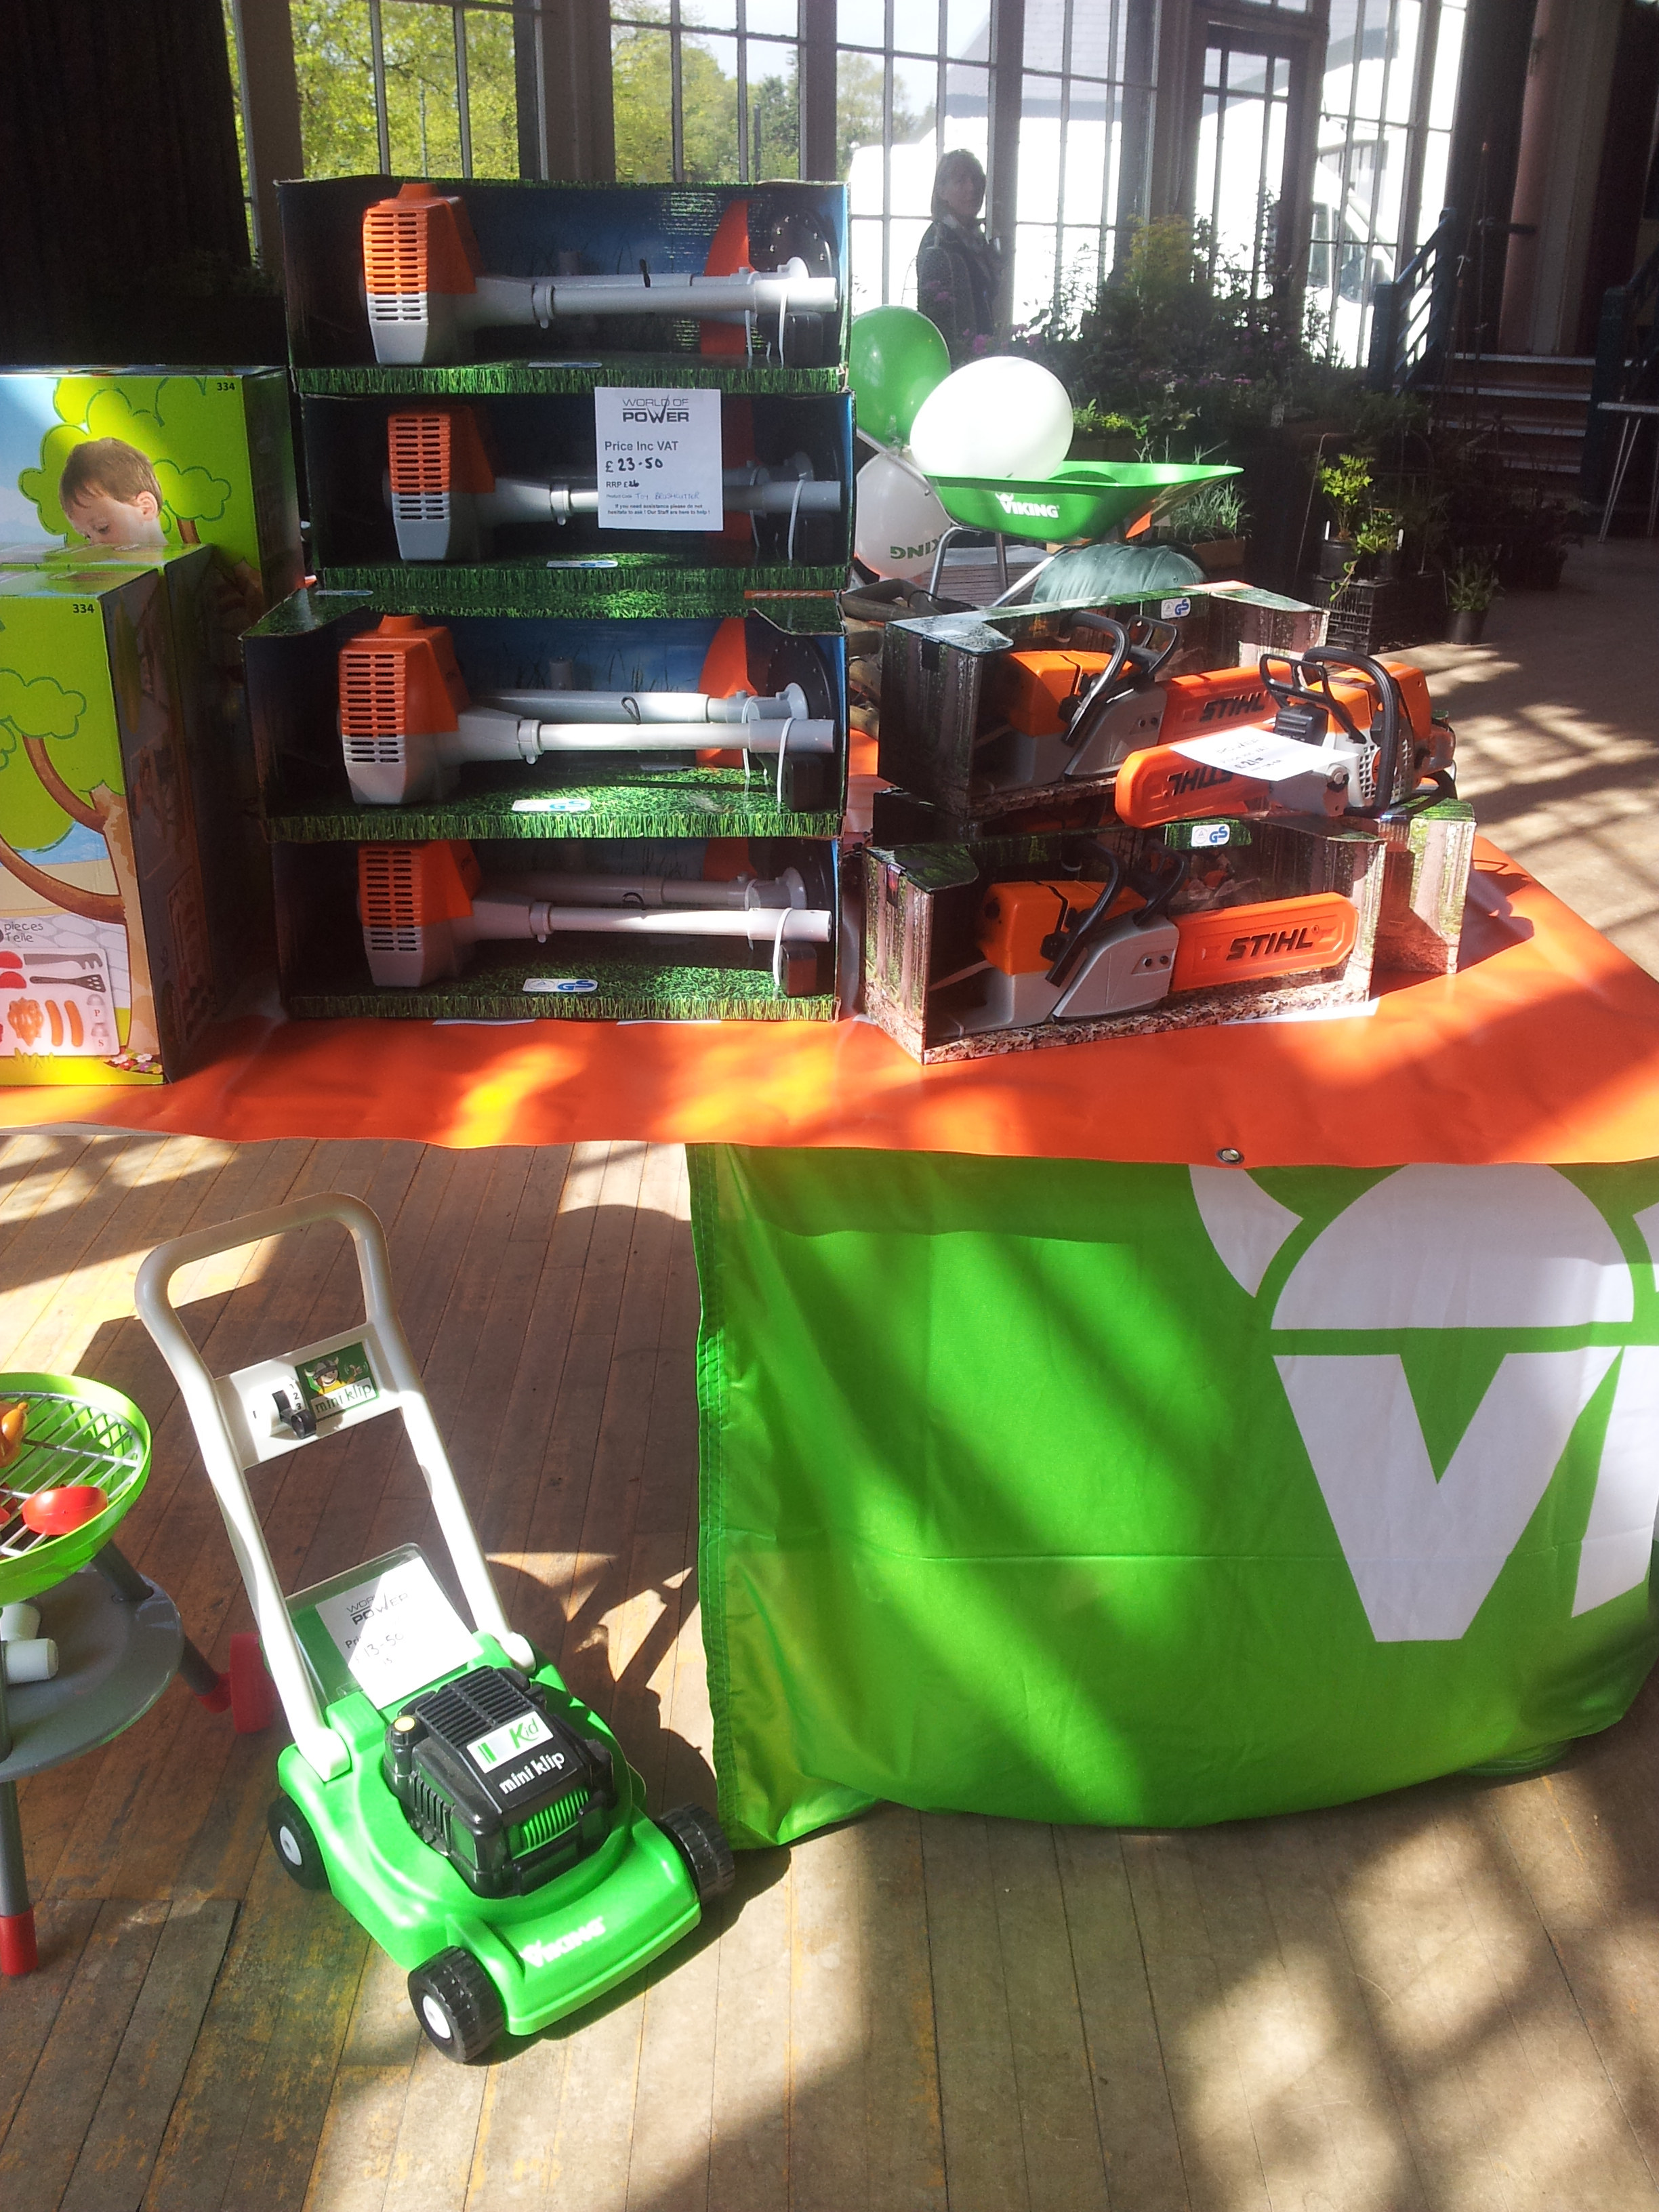 Stihl & Viking children's toys